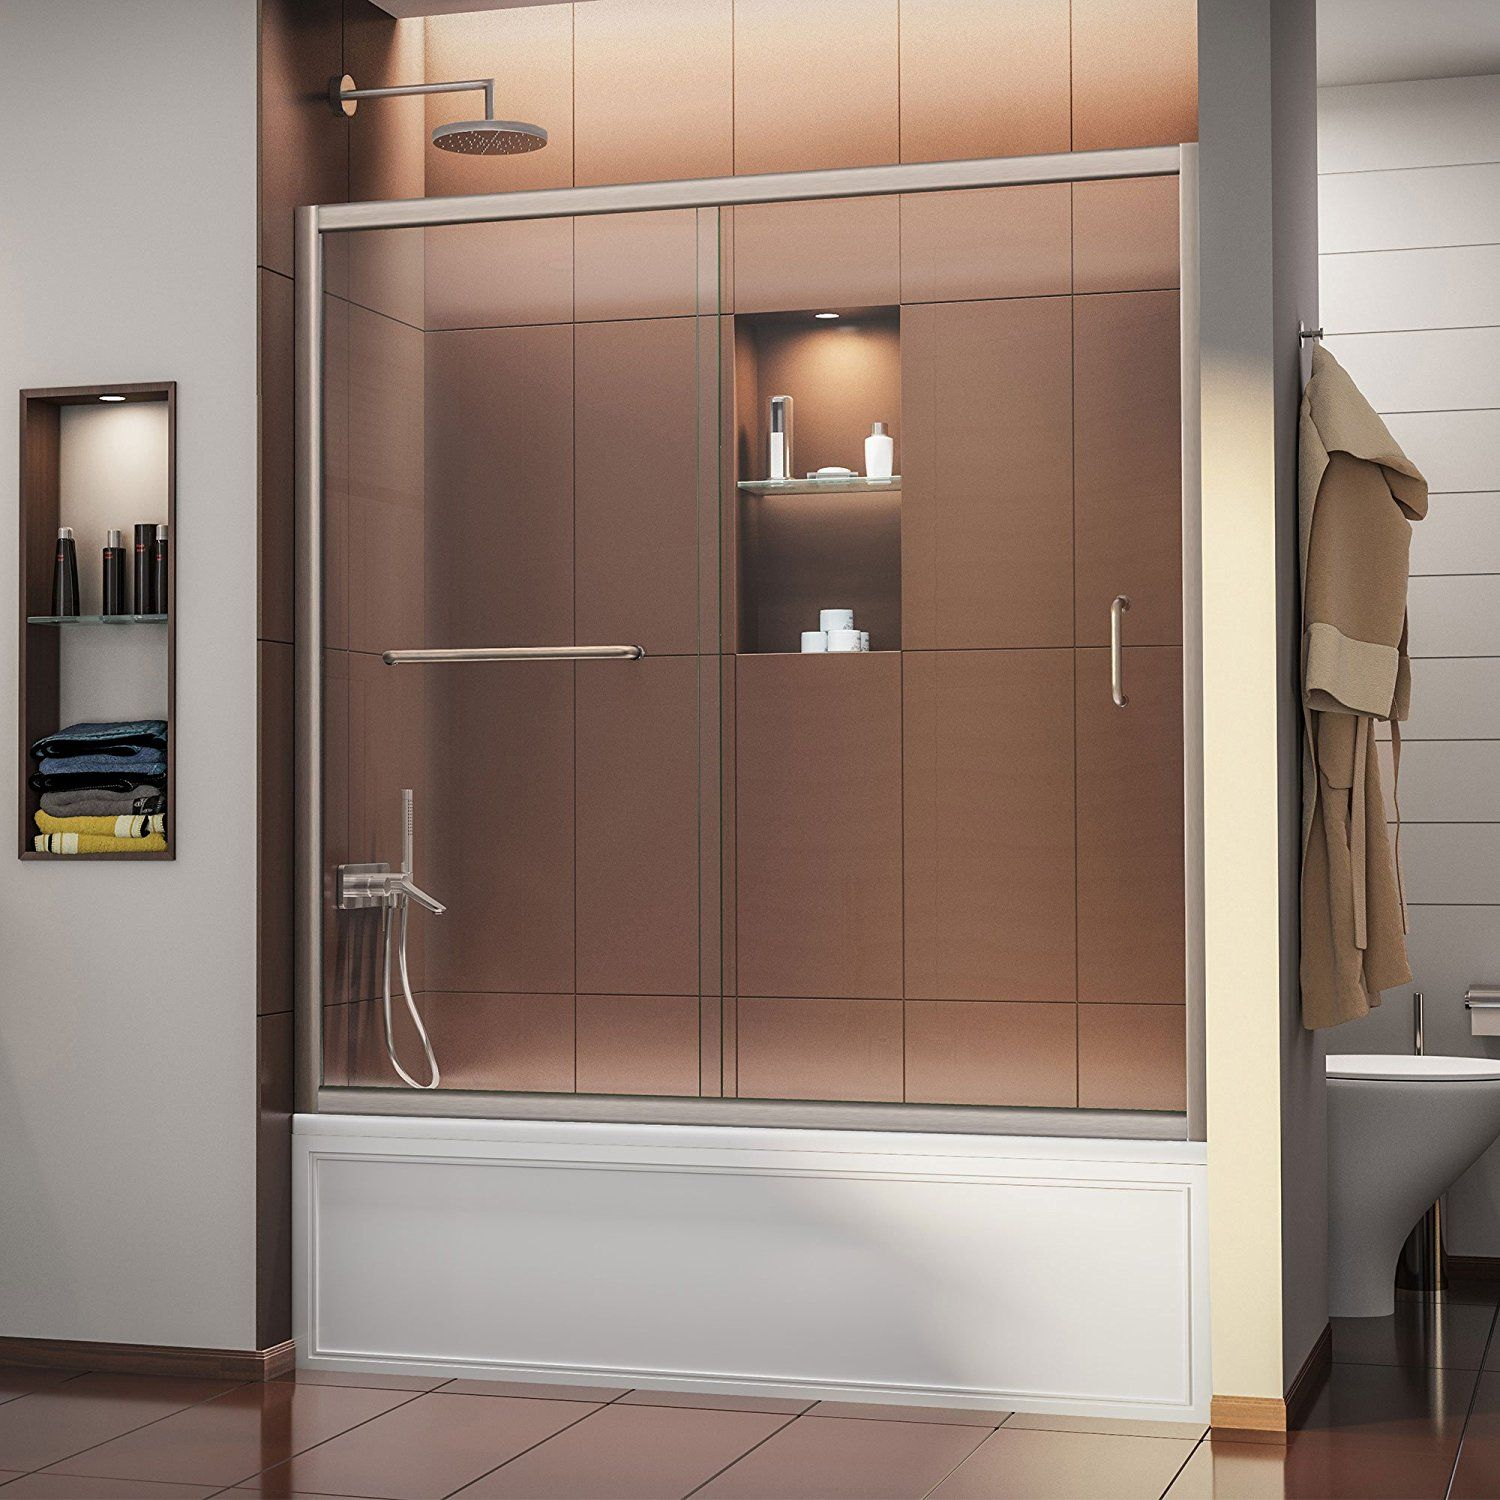 Dreamline Infinity Z 56 60 In Width Frameless Sliding Tub Door 1 X2f 4 Quot Glass Brushed Nickel Finish Bathtub Slidin Tub Doors Shower Doors Dreamline